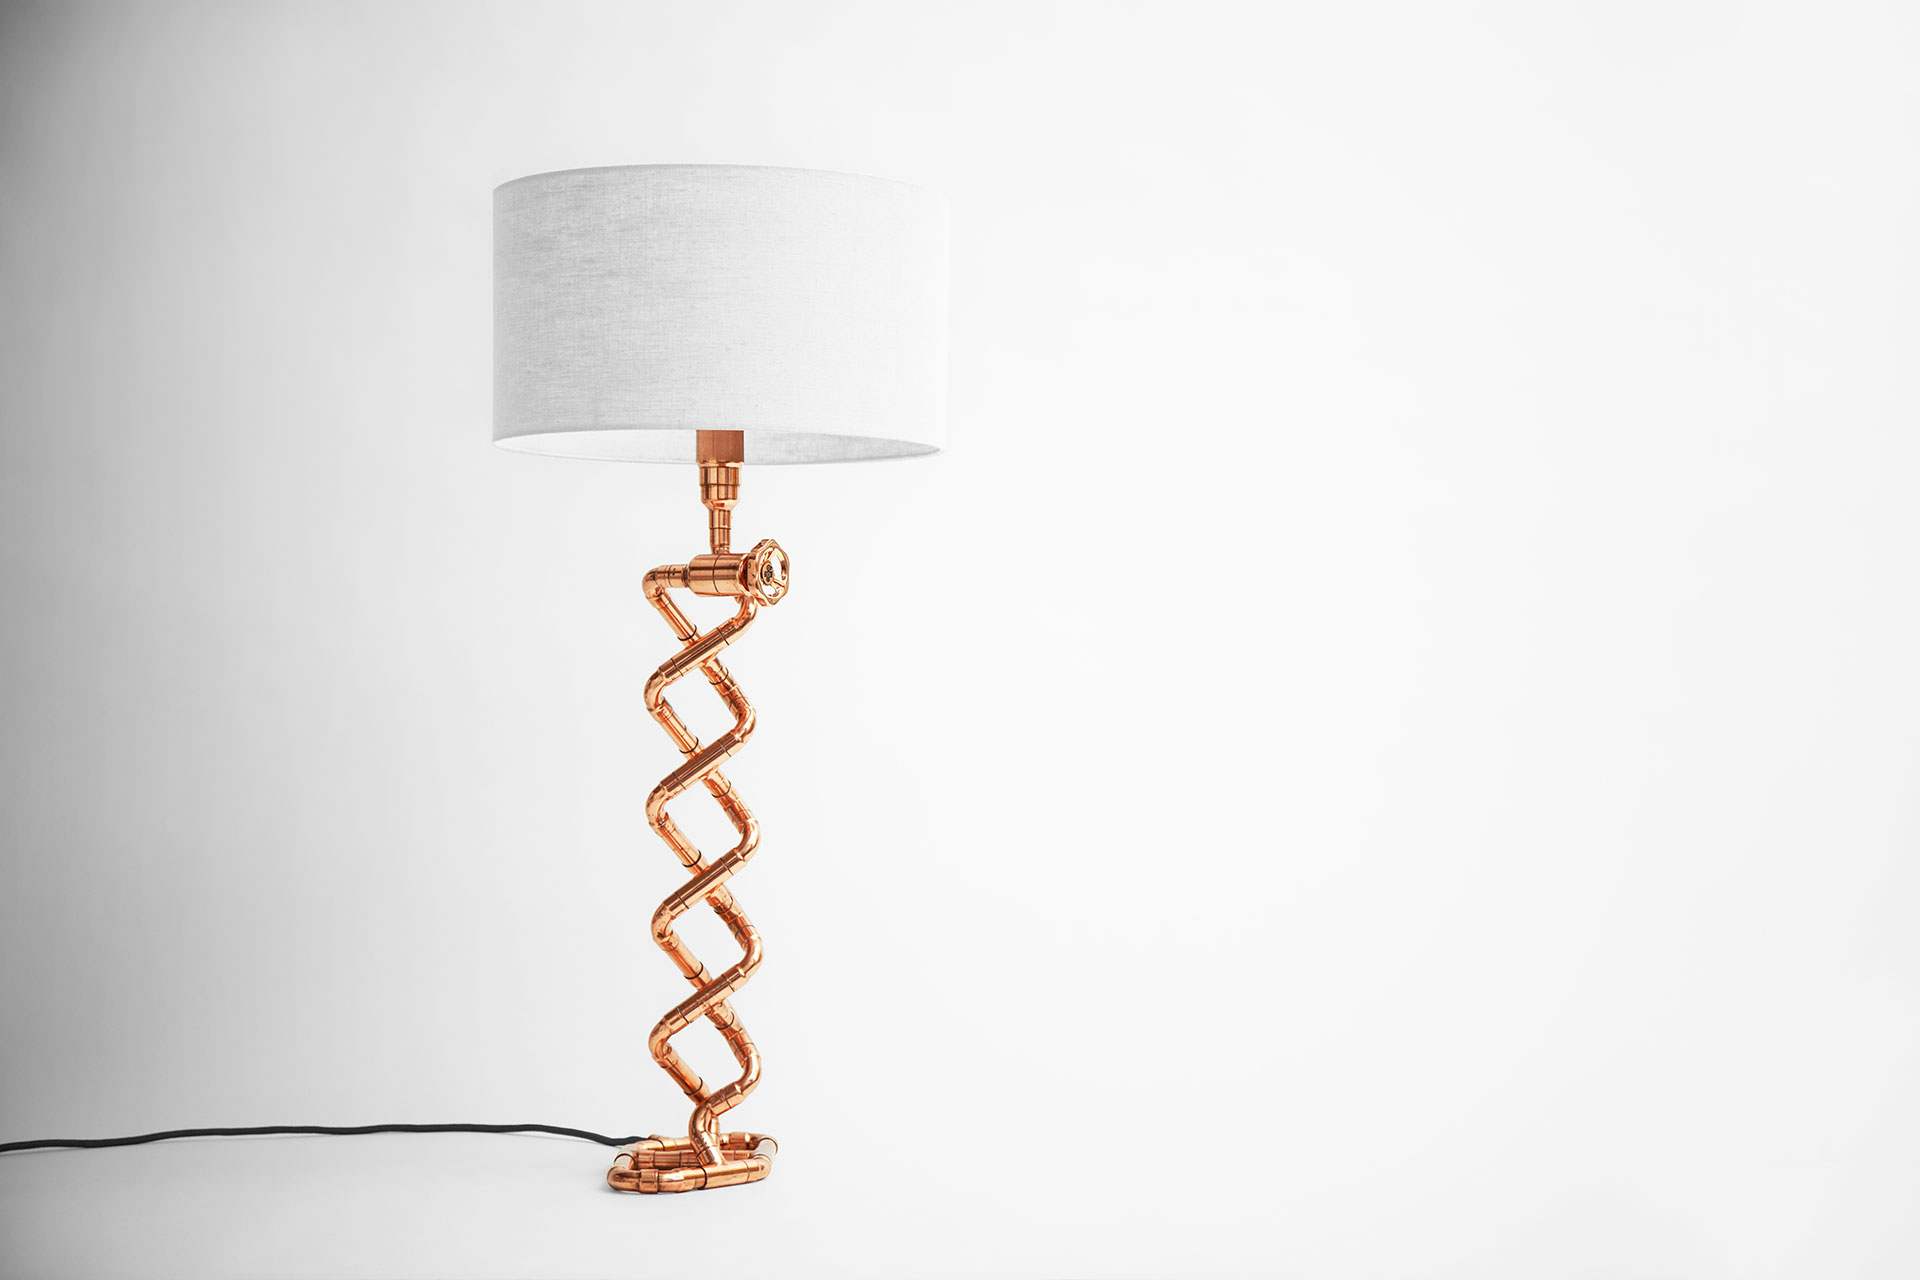 Designer table lamp in trendy copper finish with dimmer and linen shade inspired by DNA double helix